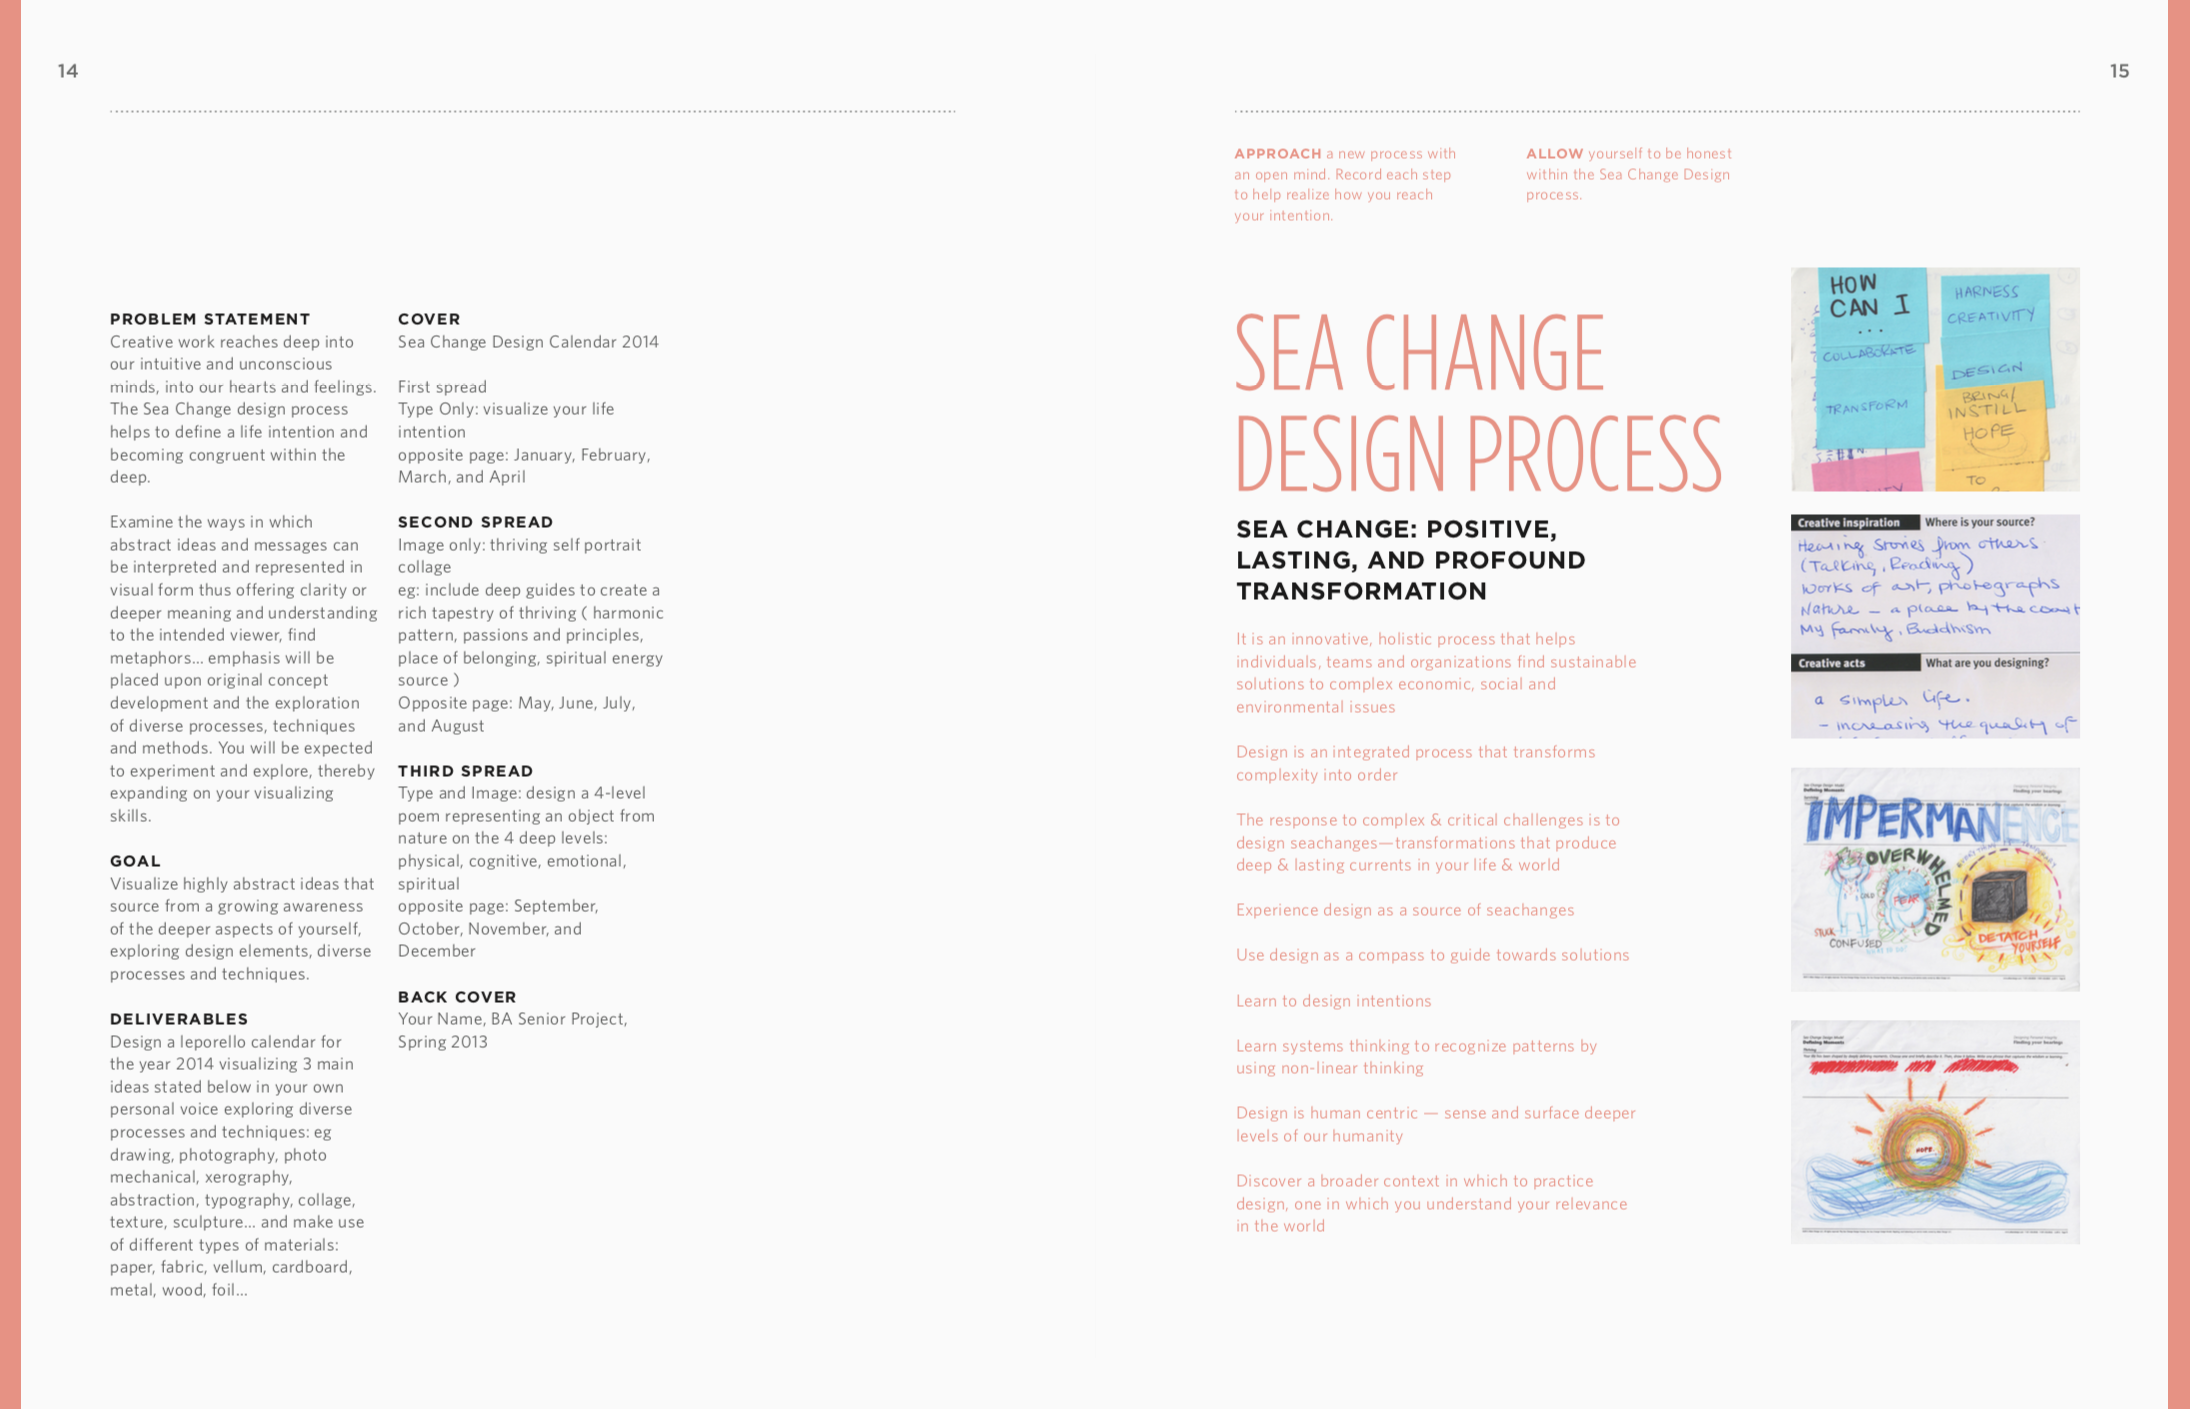 197_ProcessNotebook_Spread-6.png